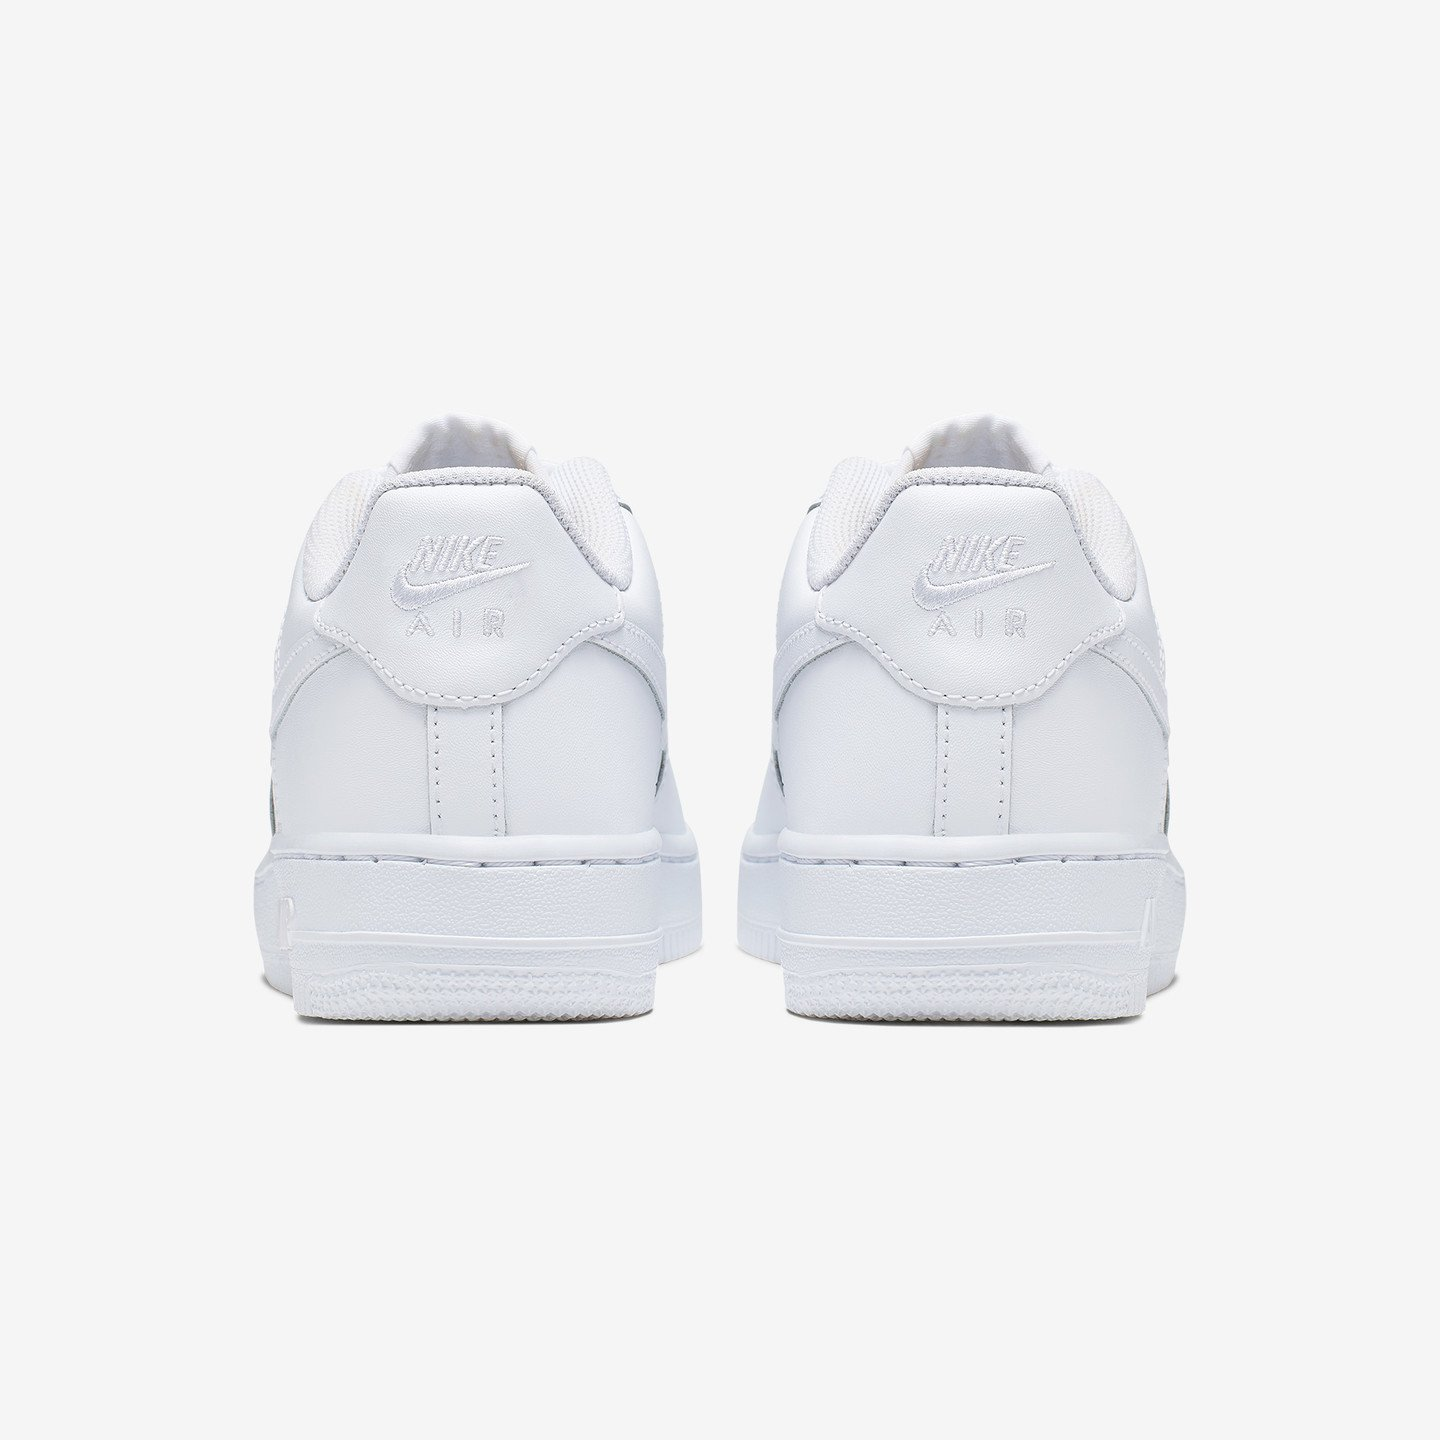 Nike Air Force 1 Low GS White / White / White 314192-117